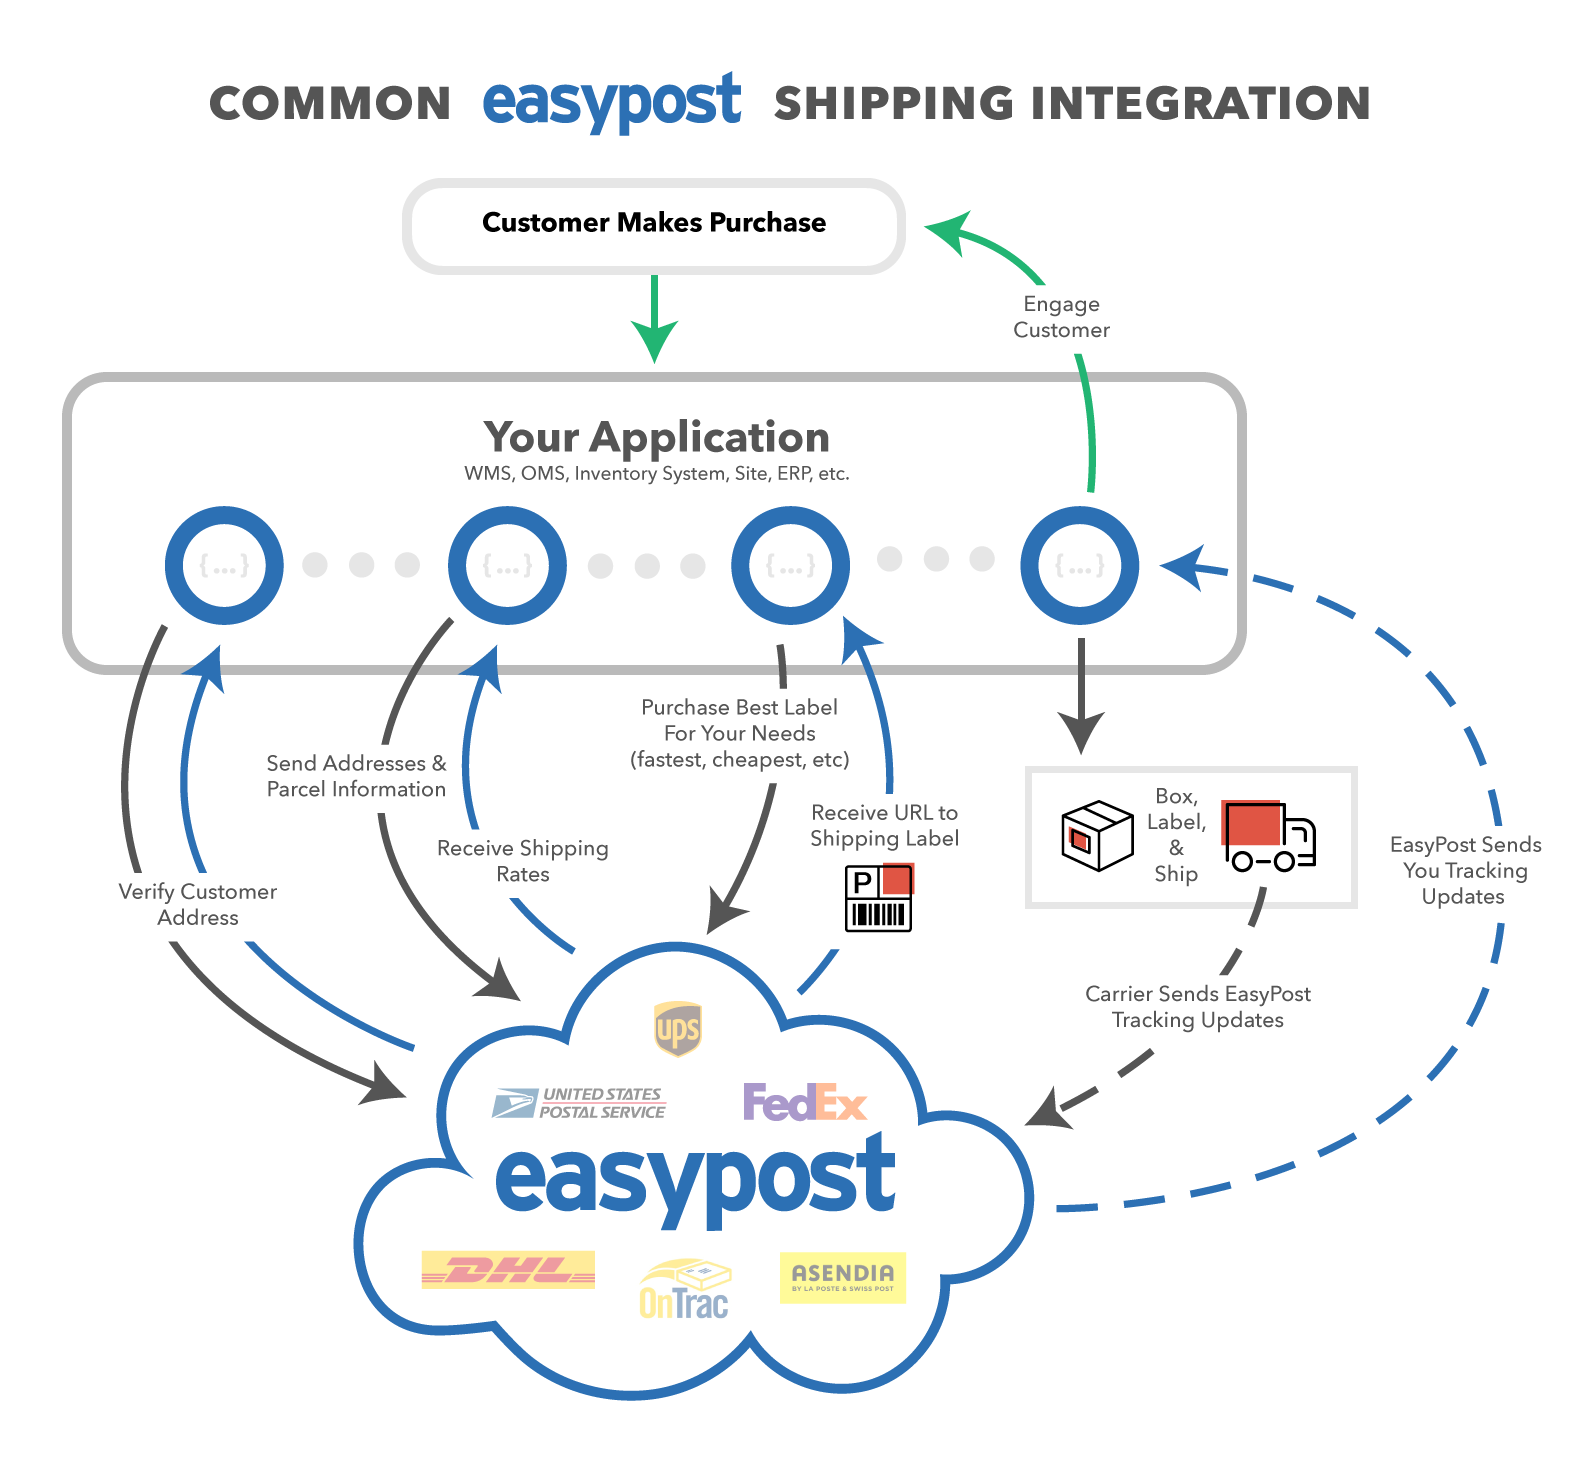 Common EasyPost Shipping Integration